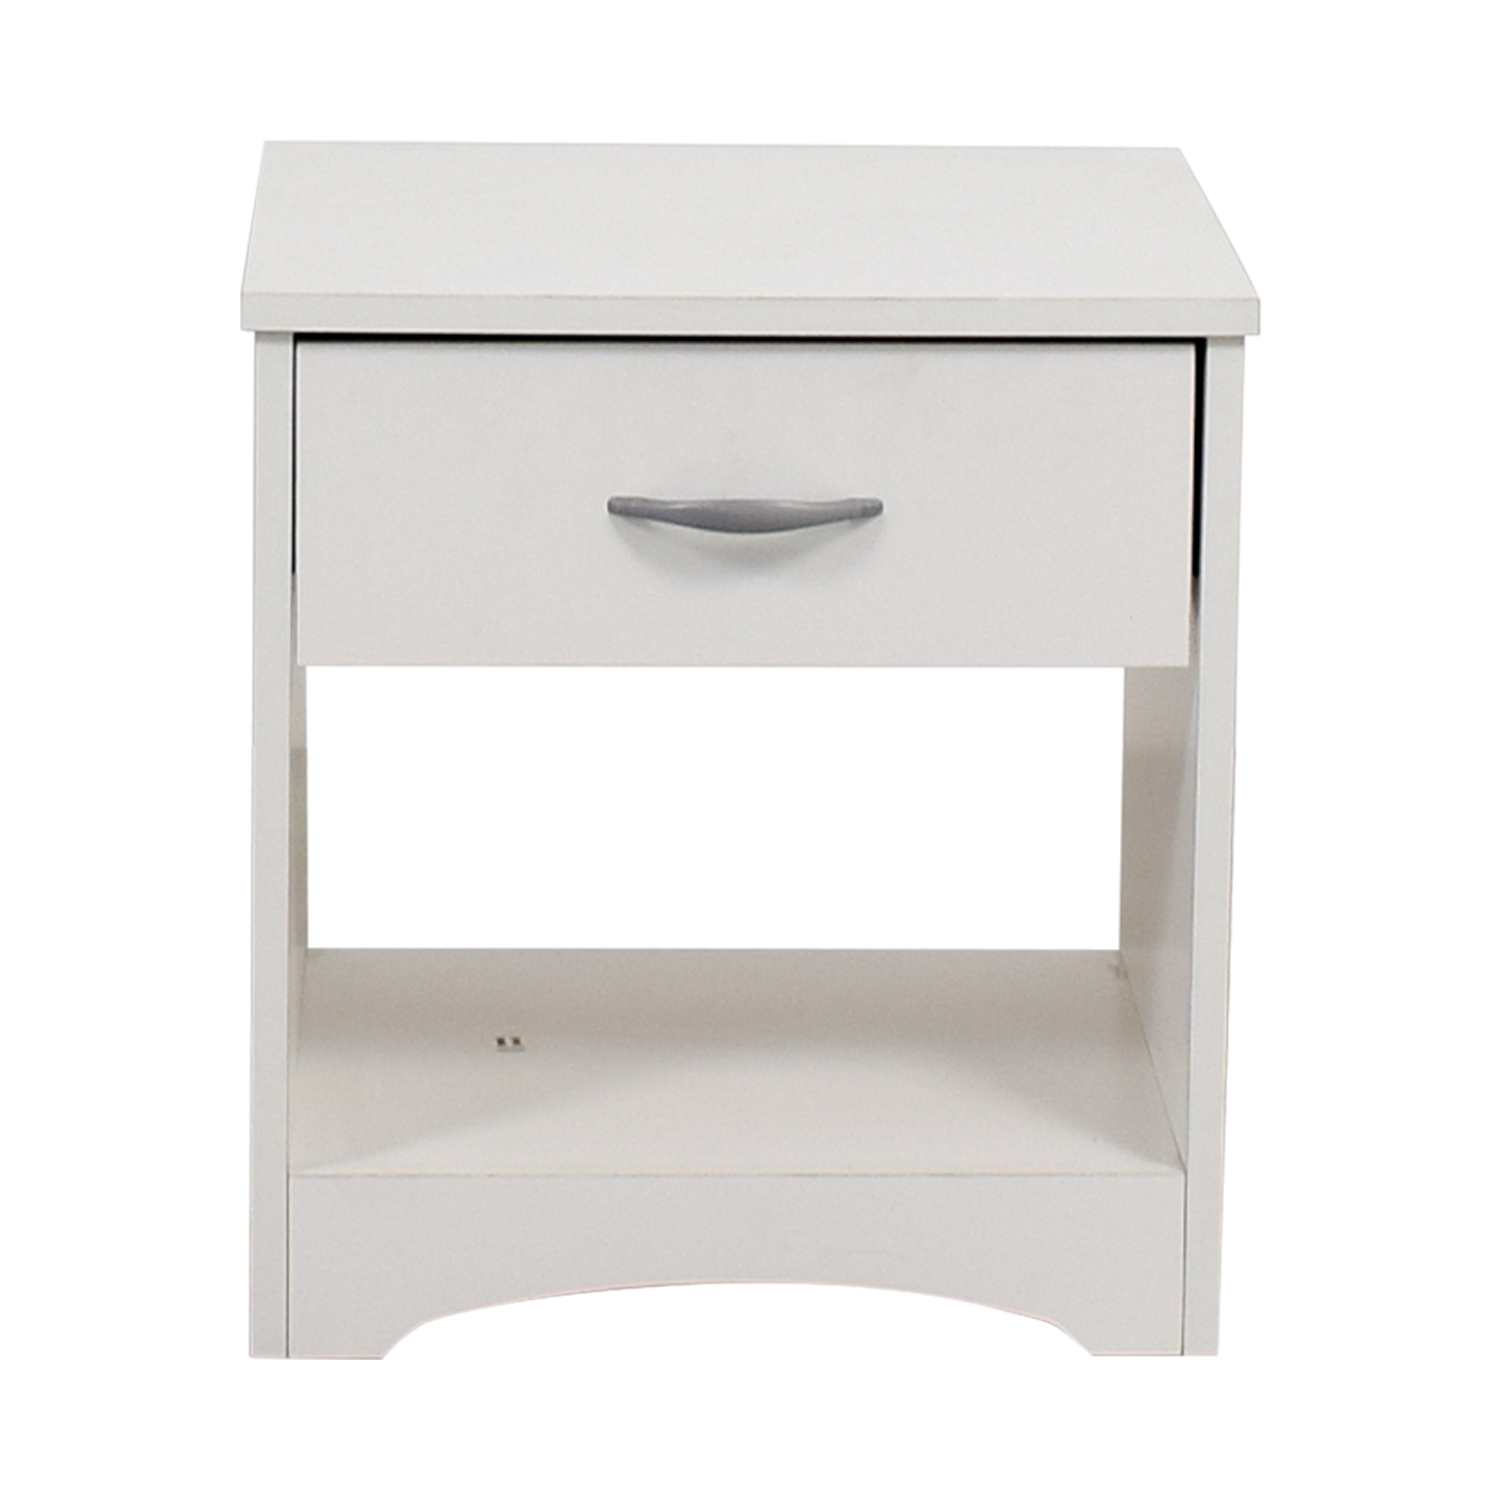 Wayfair Small White Nightstand / End Tables